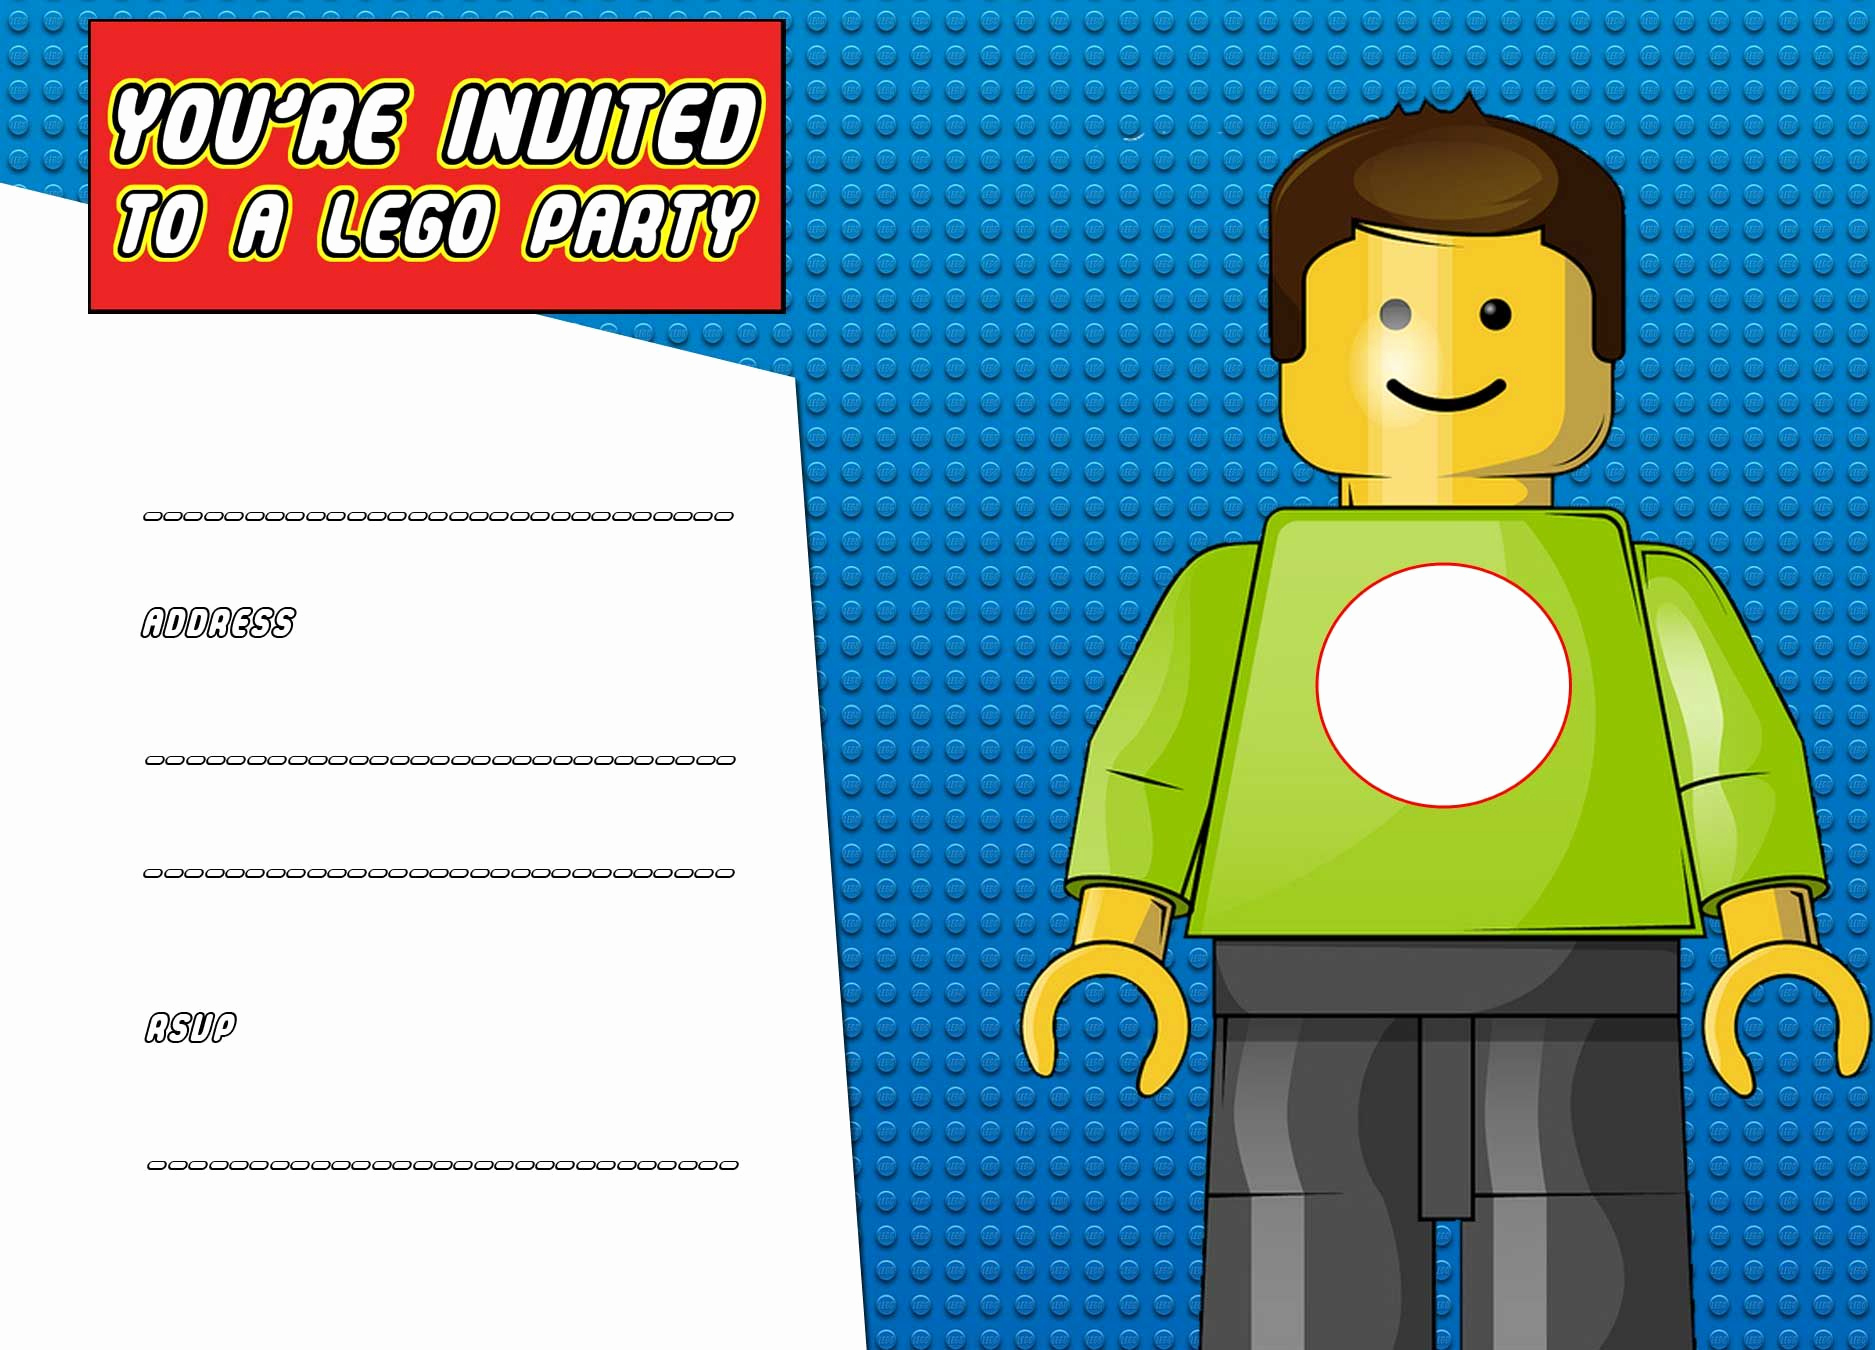 Lego Party Invitation Printable Awesome Download now Free Printable Lego Birthday Invitation